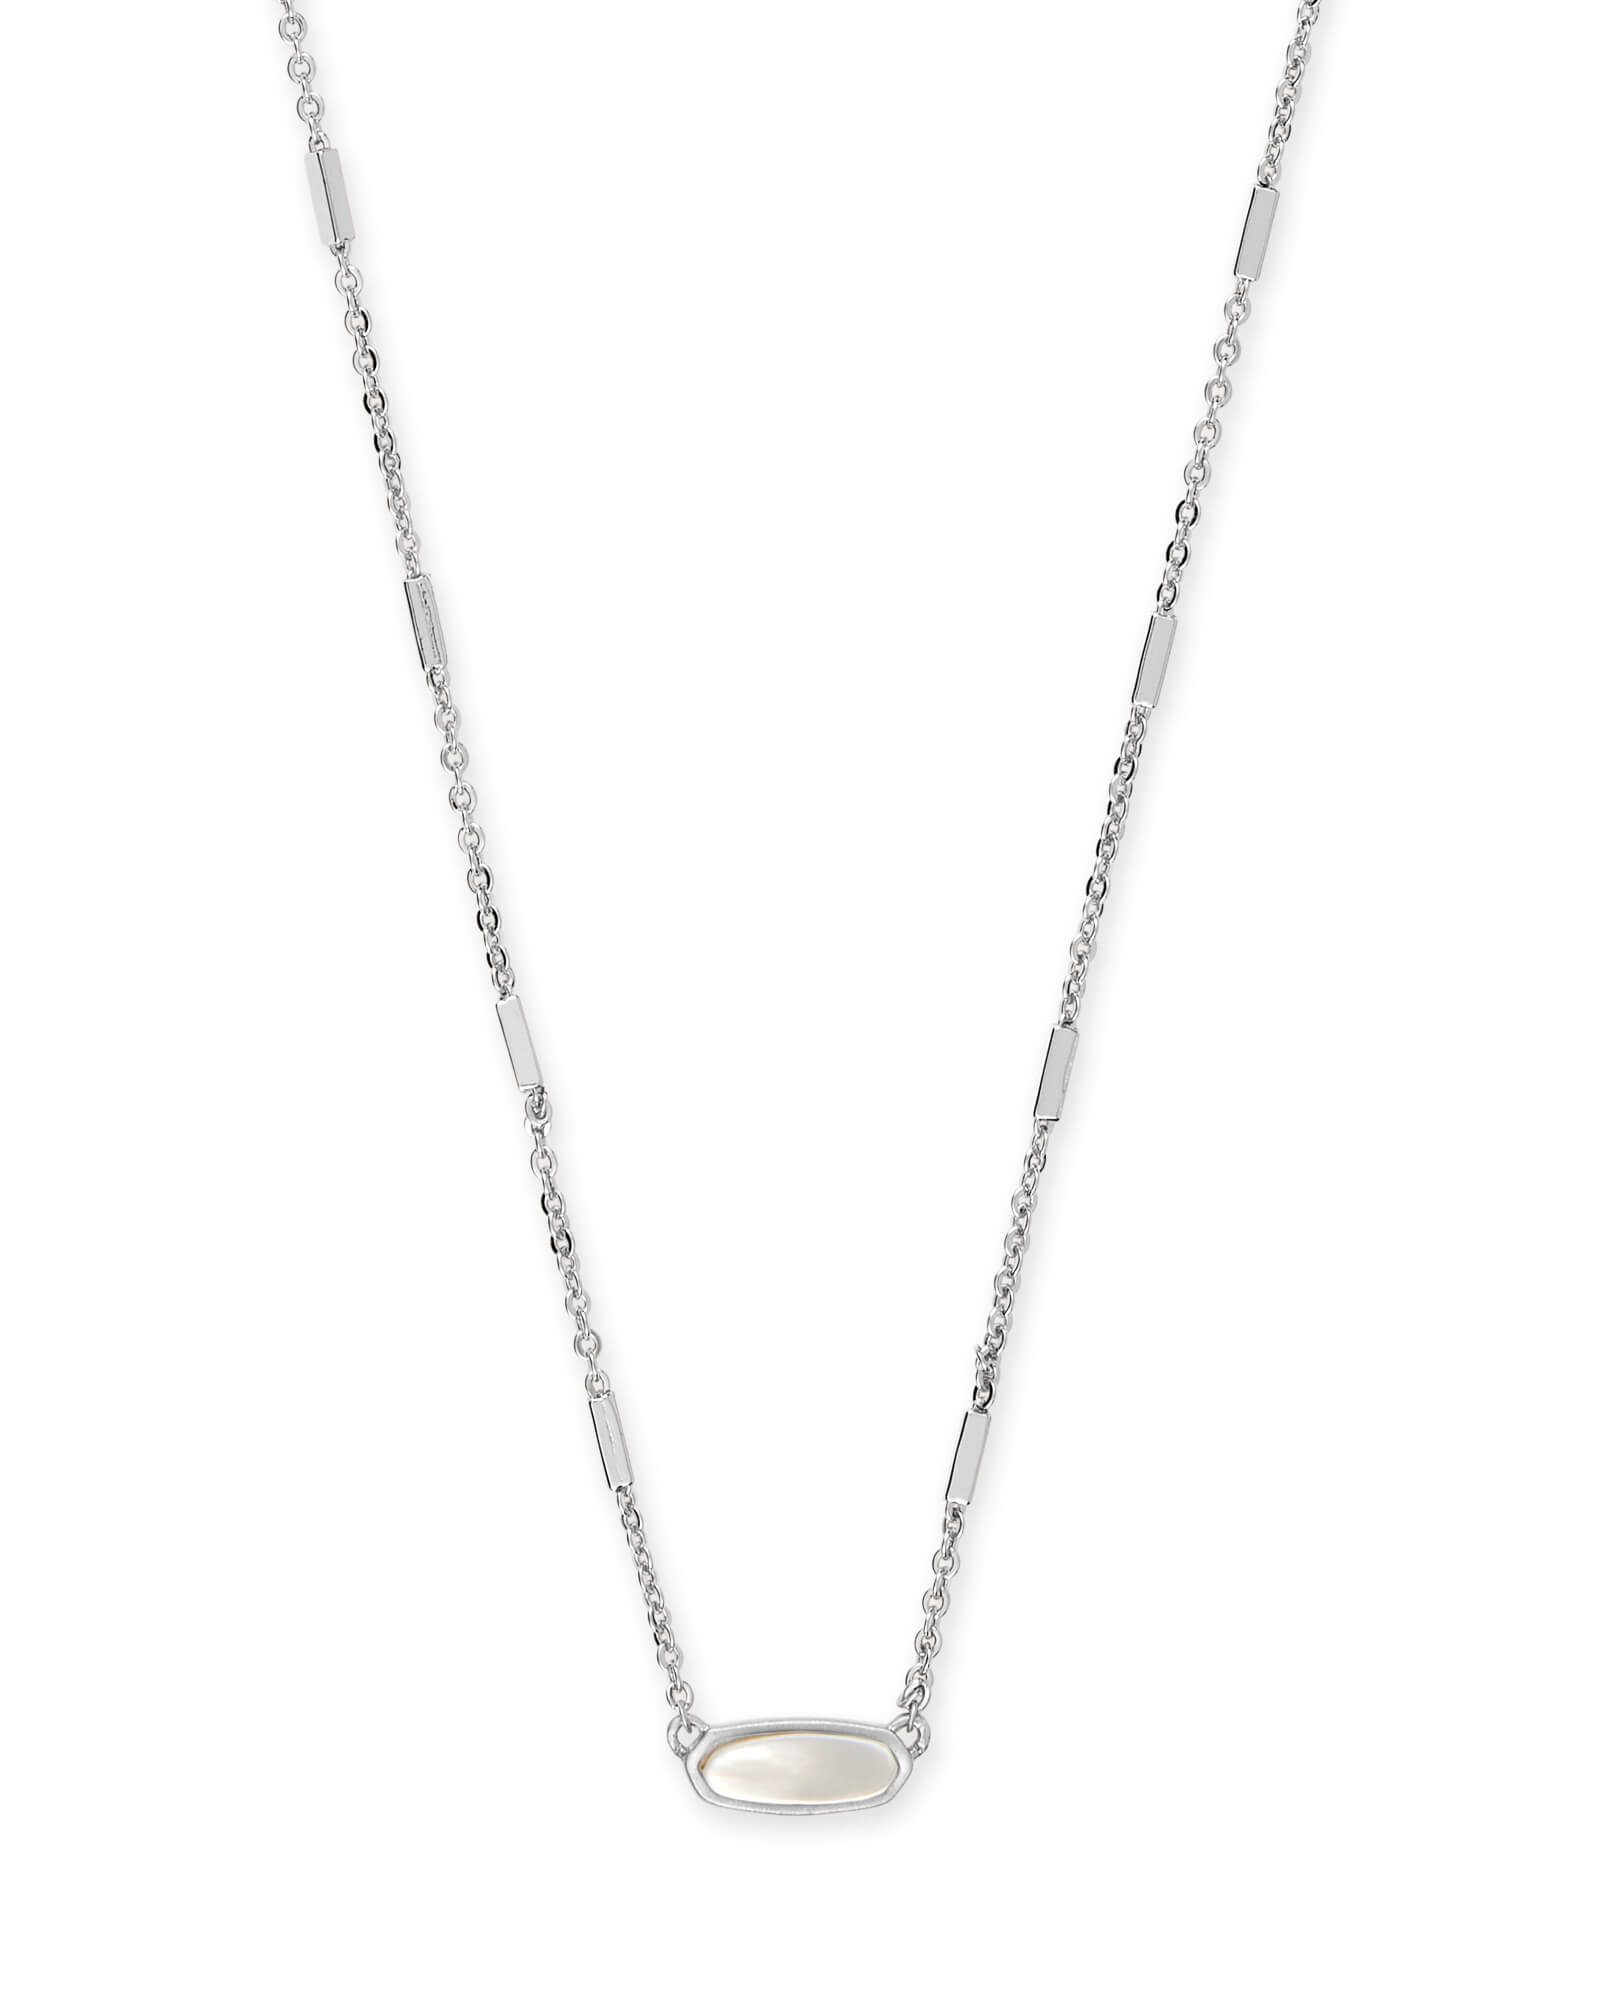 Miya Bright Silver Pendant Necklace in Ivory Pearl